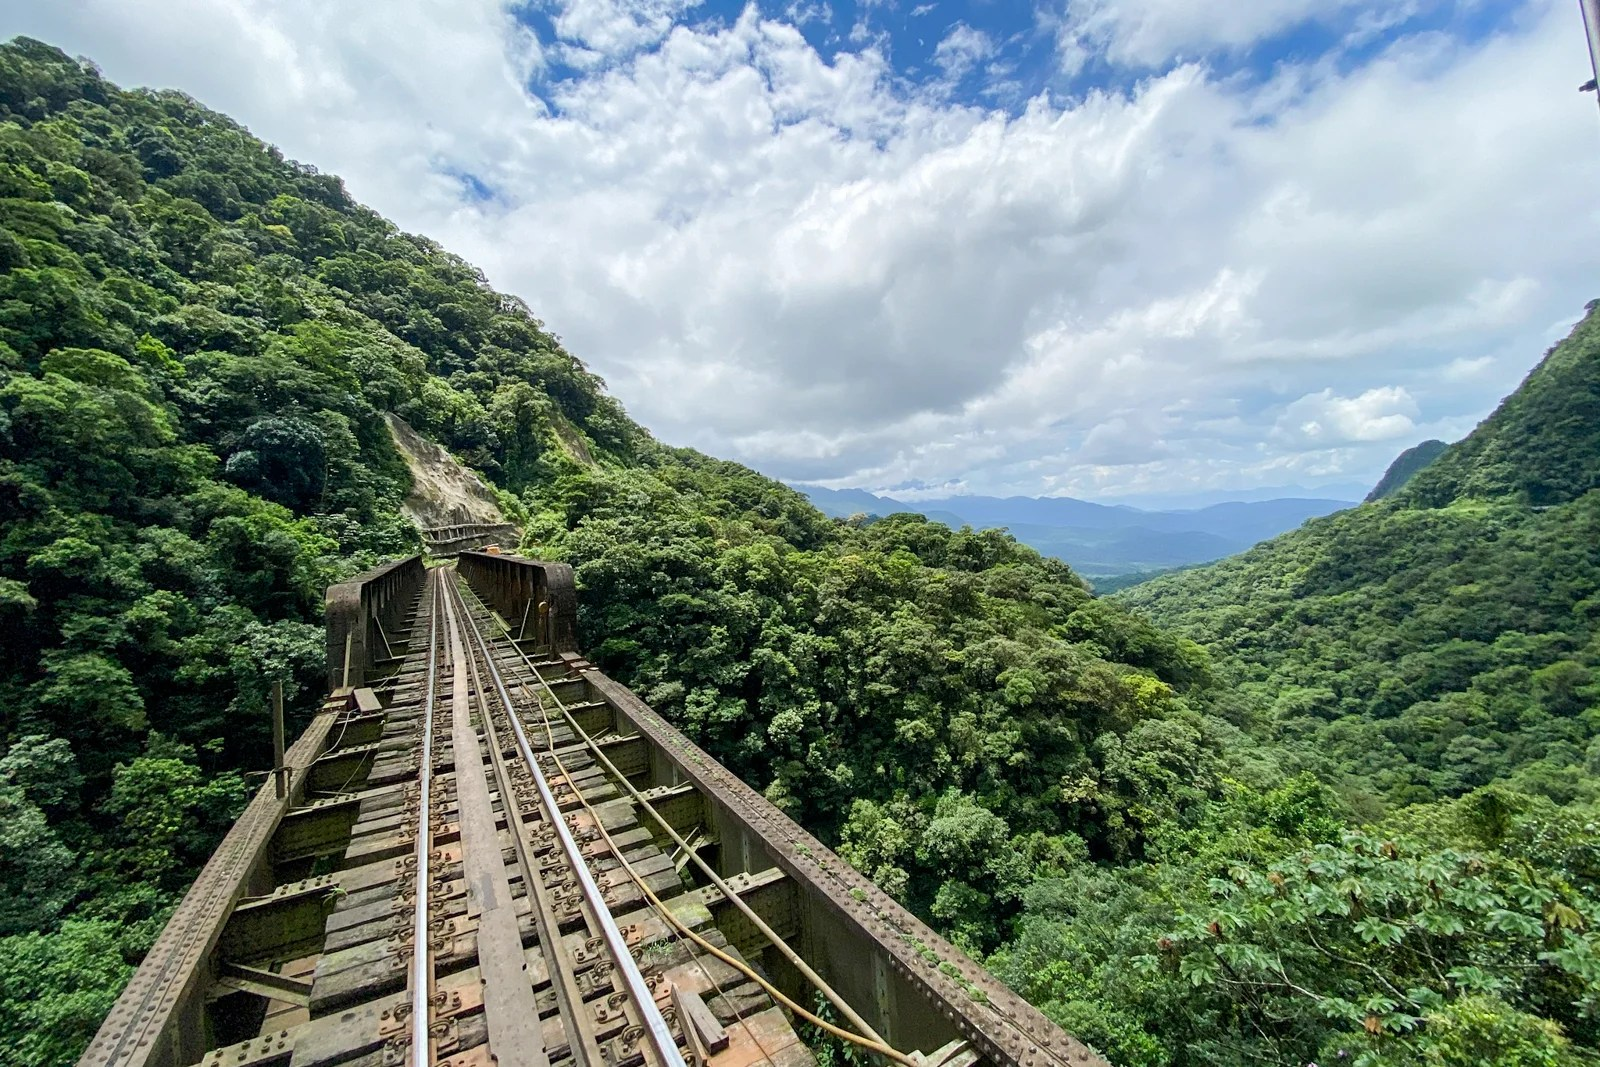 Brazil's Serra Verde Express: One of the world's most beautiful train journeys in the world